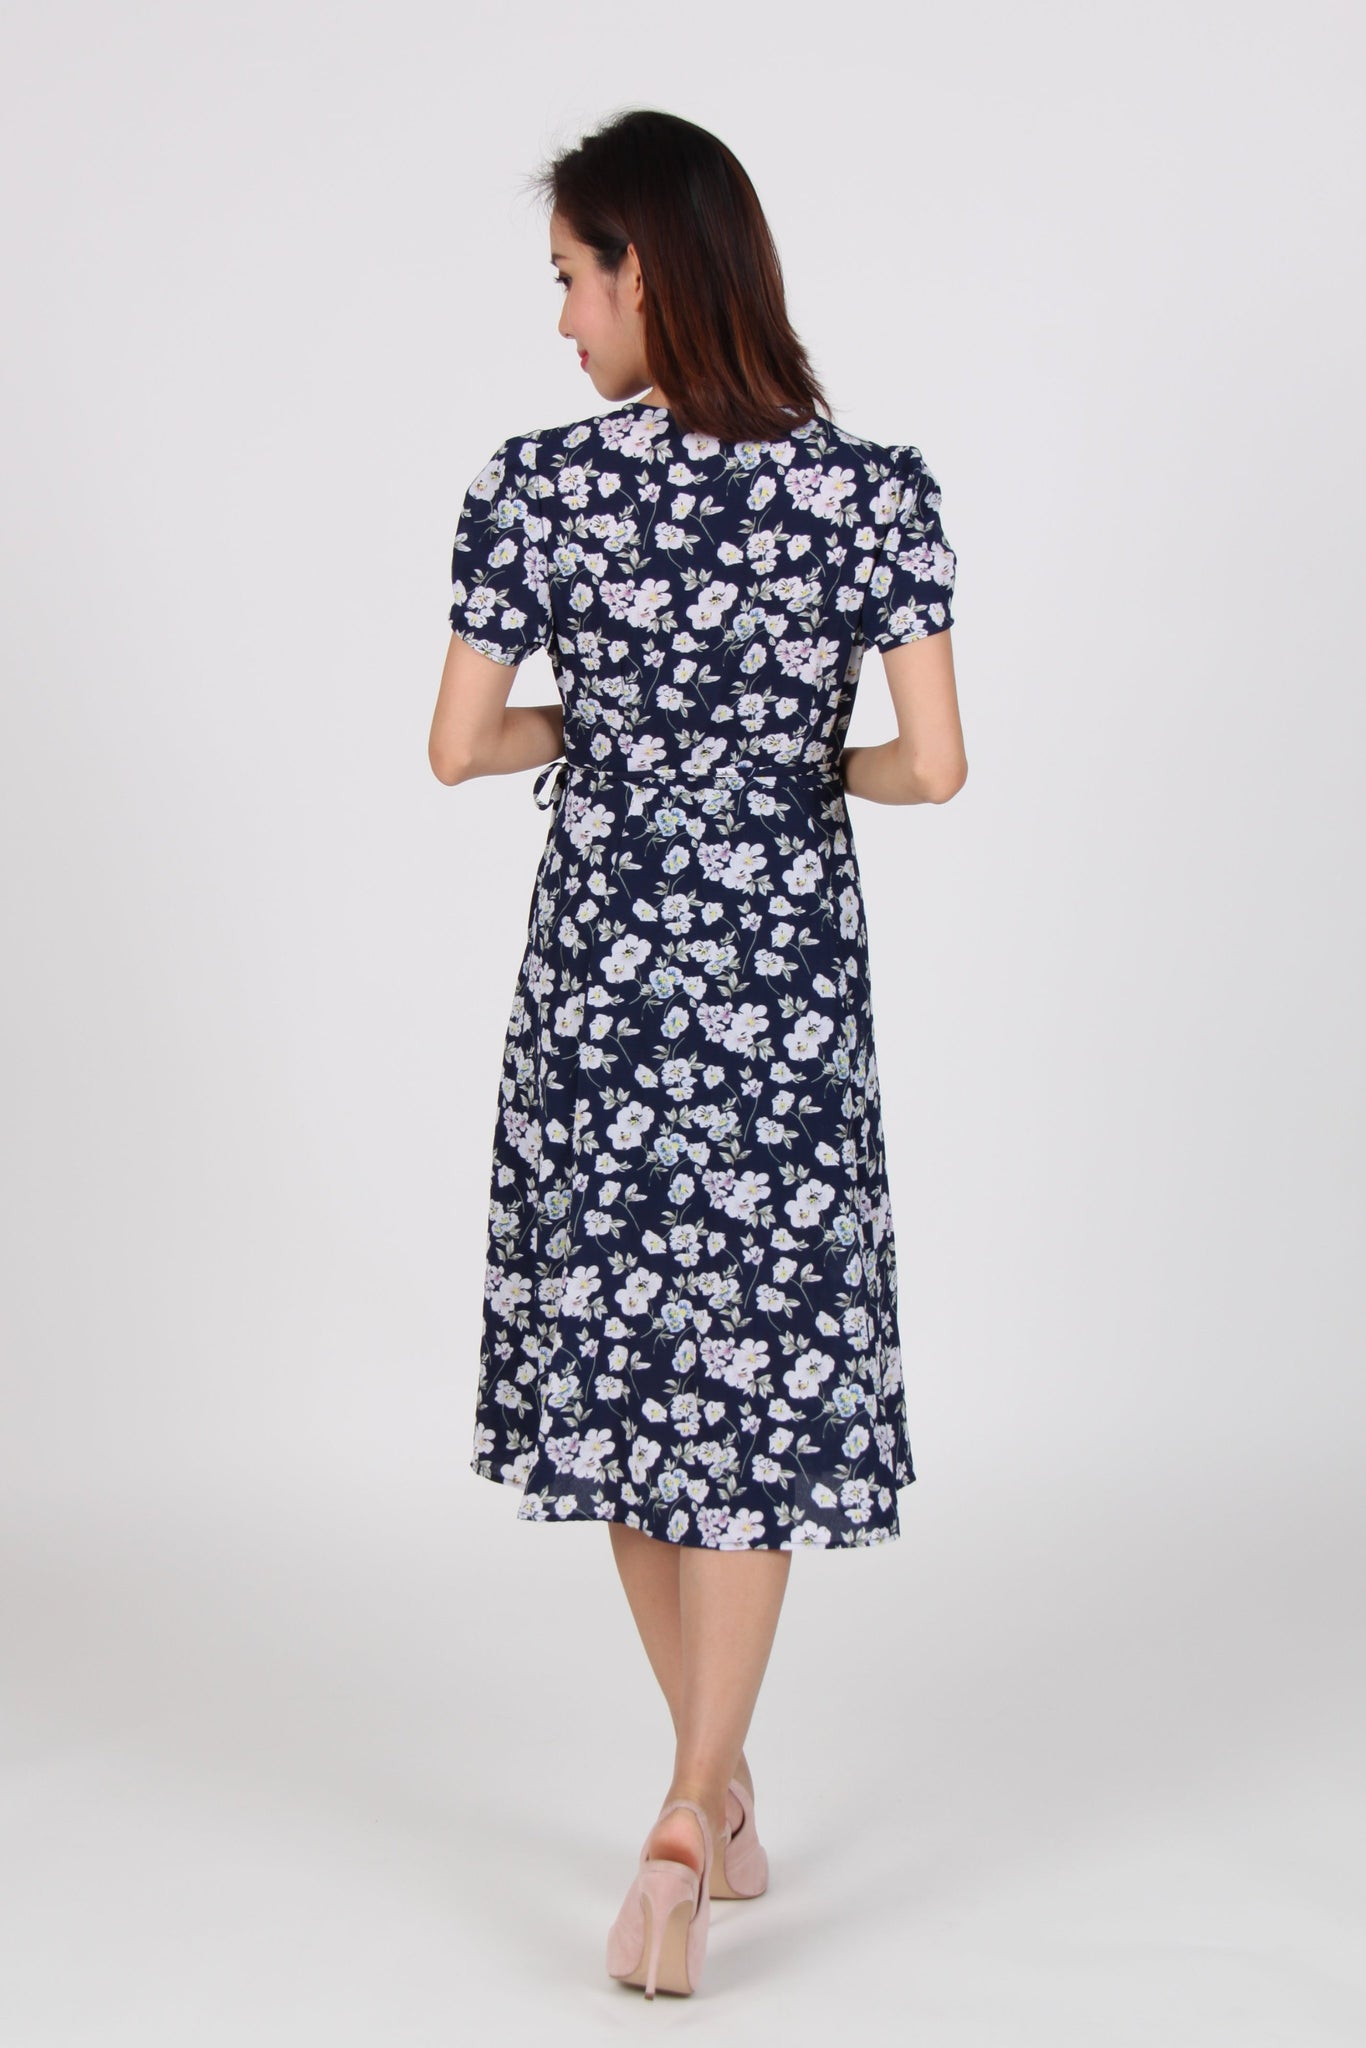 Wrap Floral Midi Dress in Navy Blue